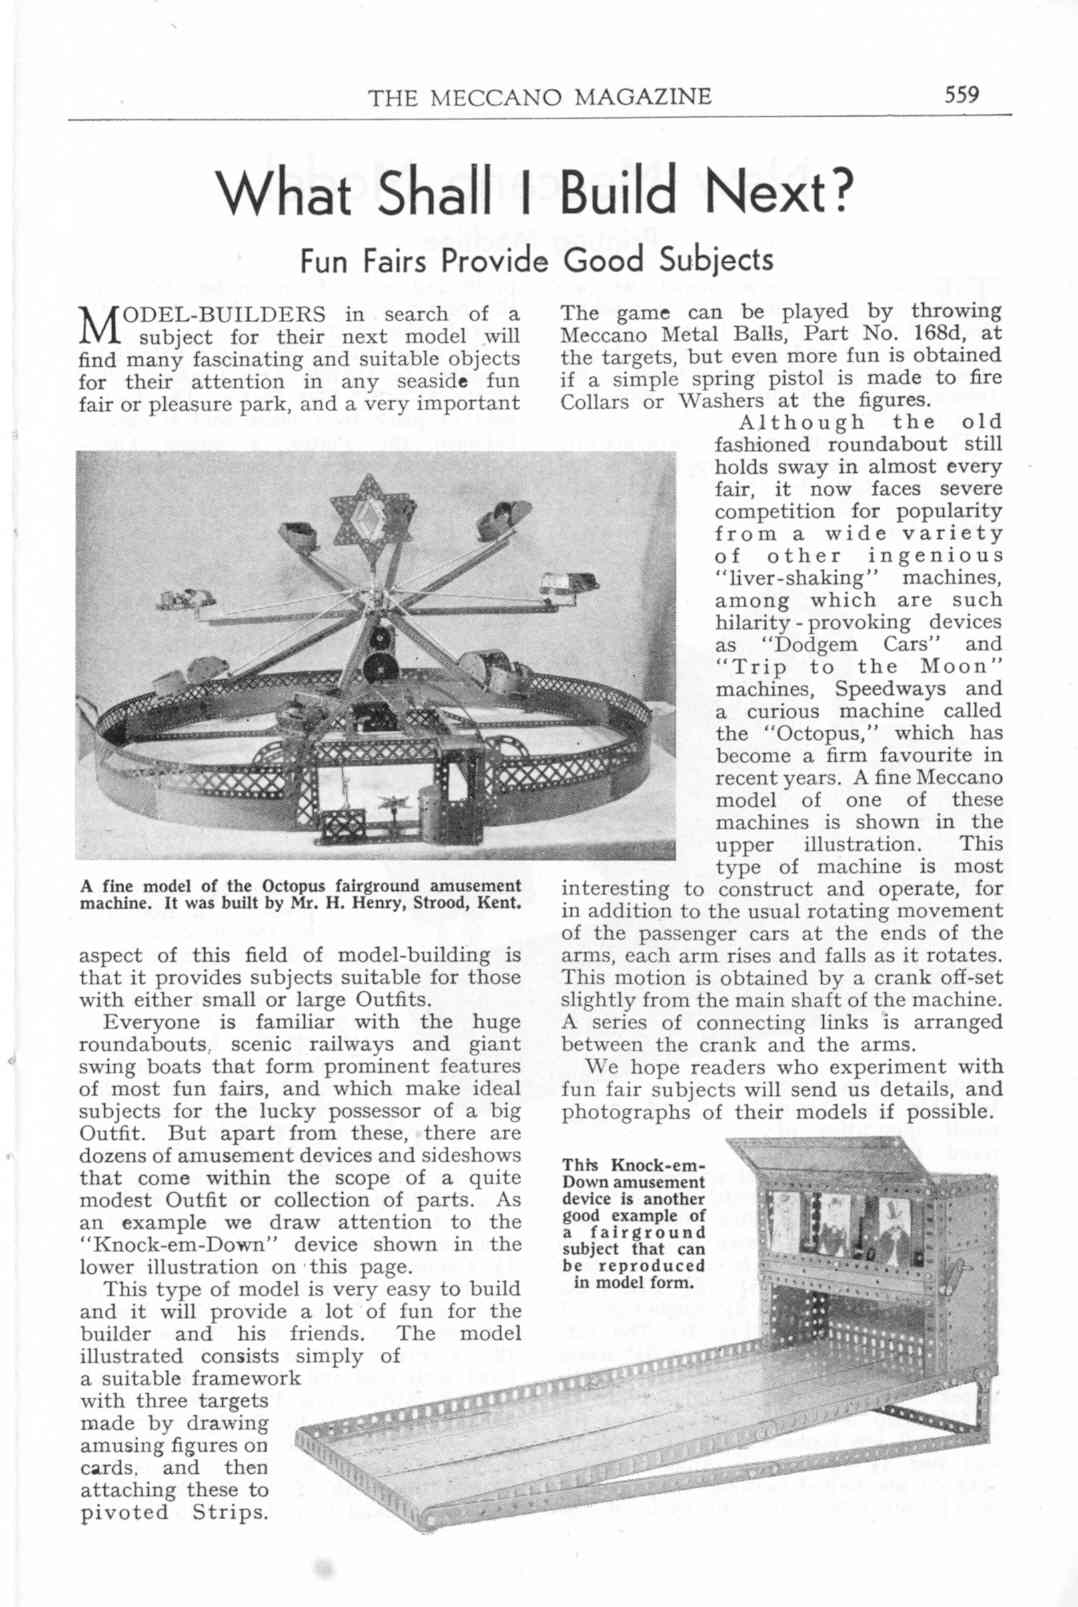 UK Meccano Magazine October 1955 Page 559